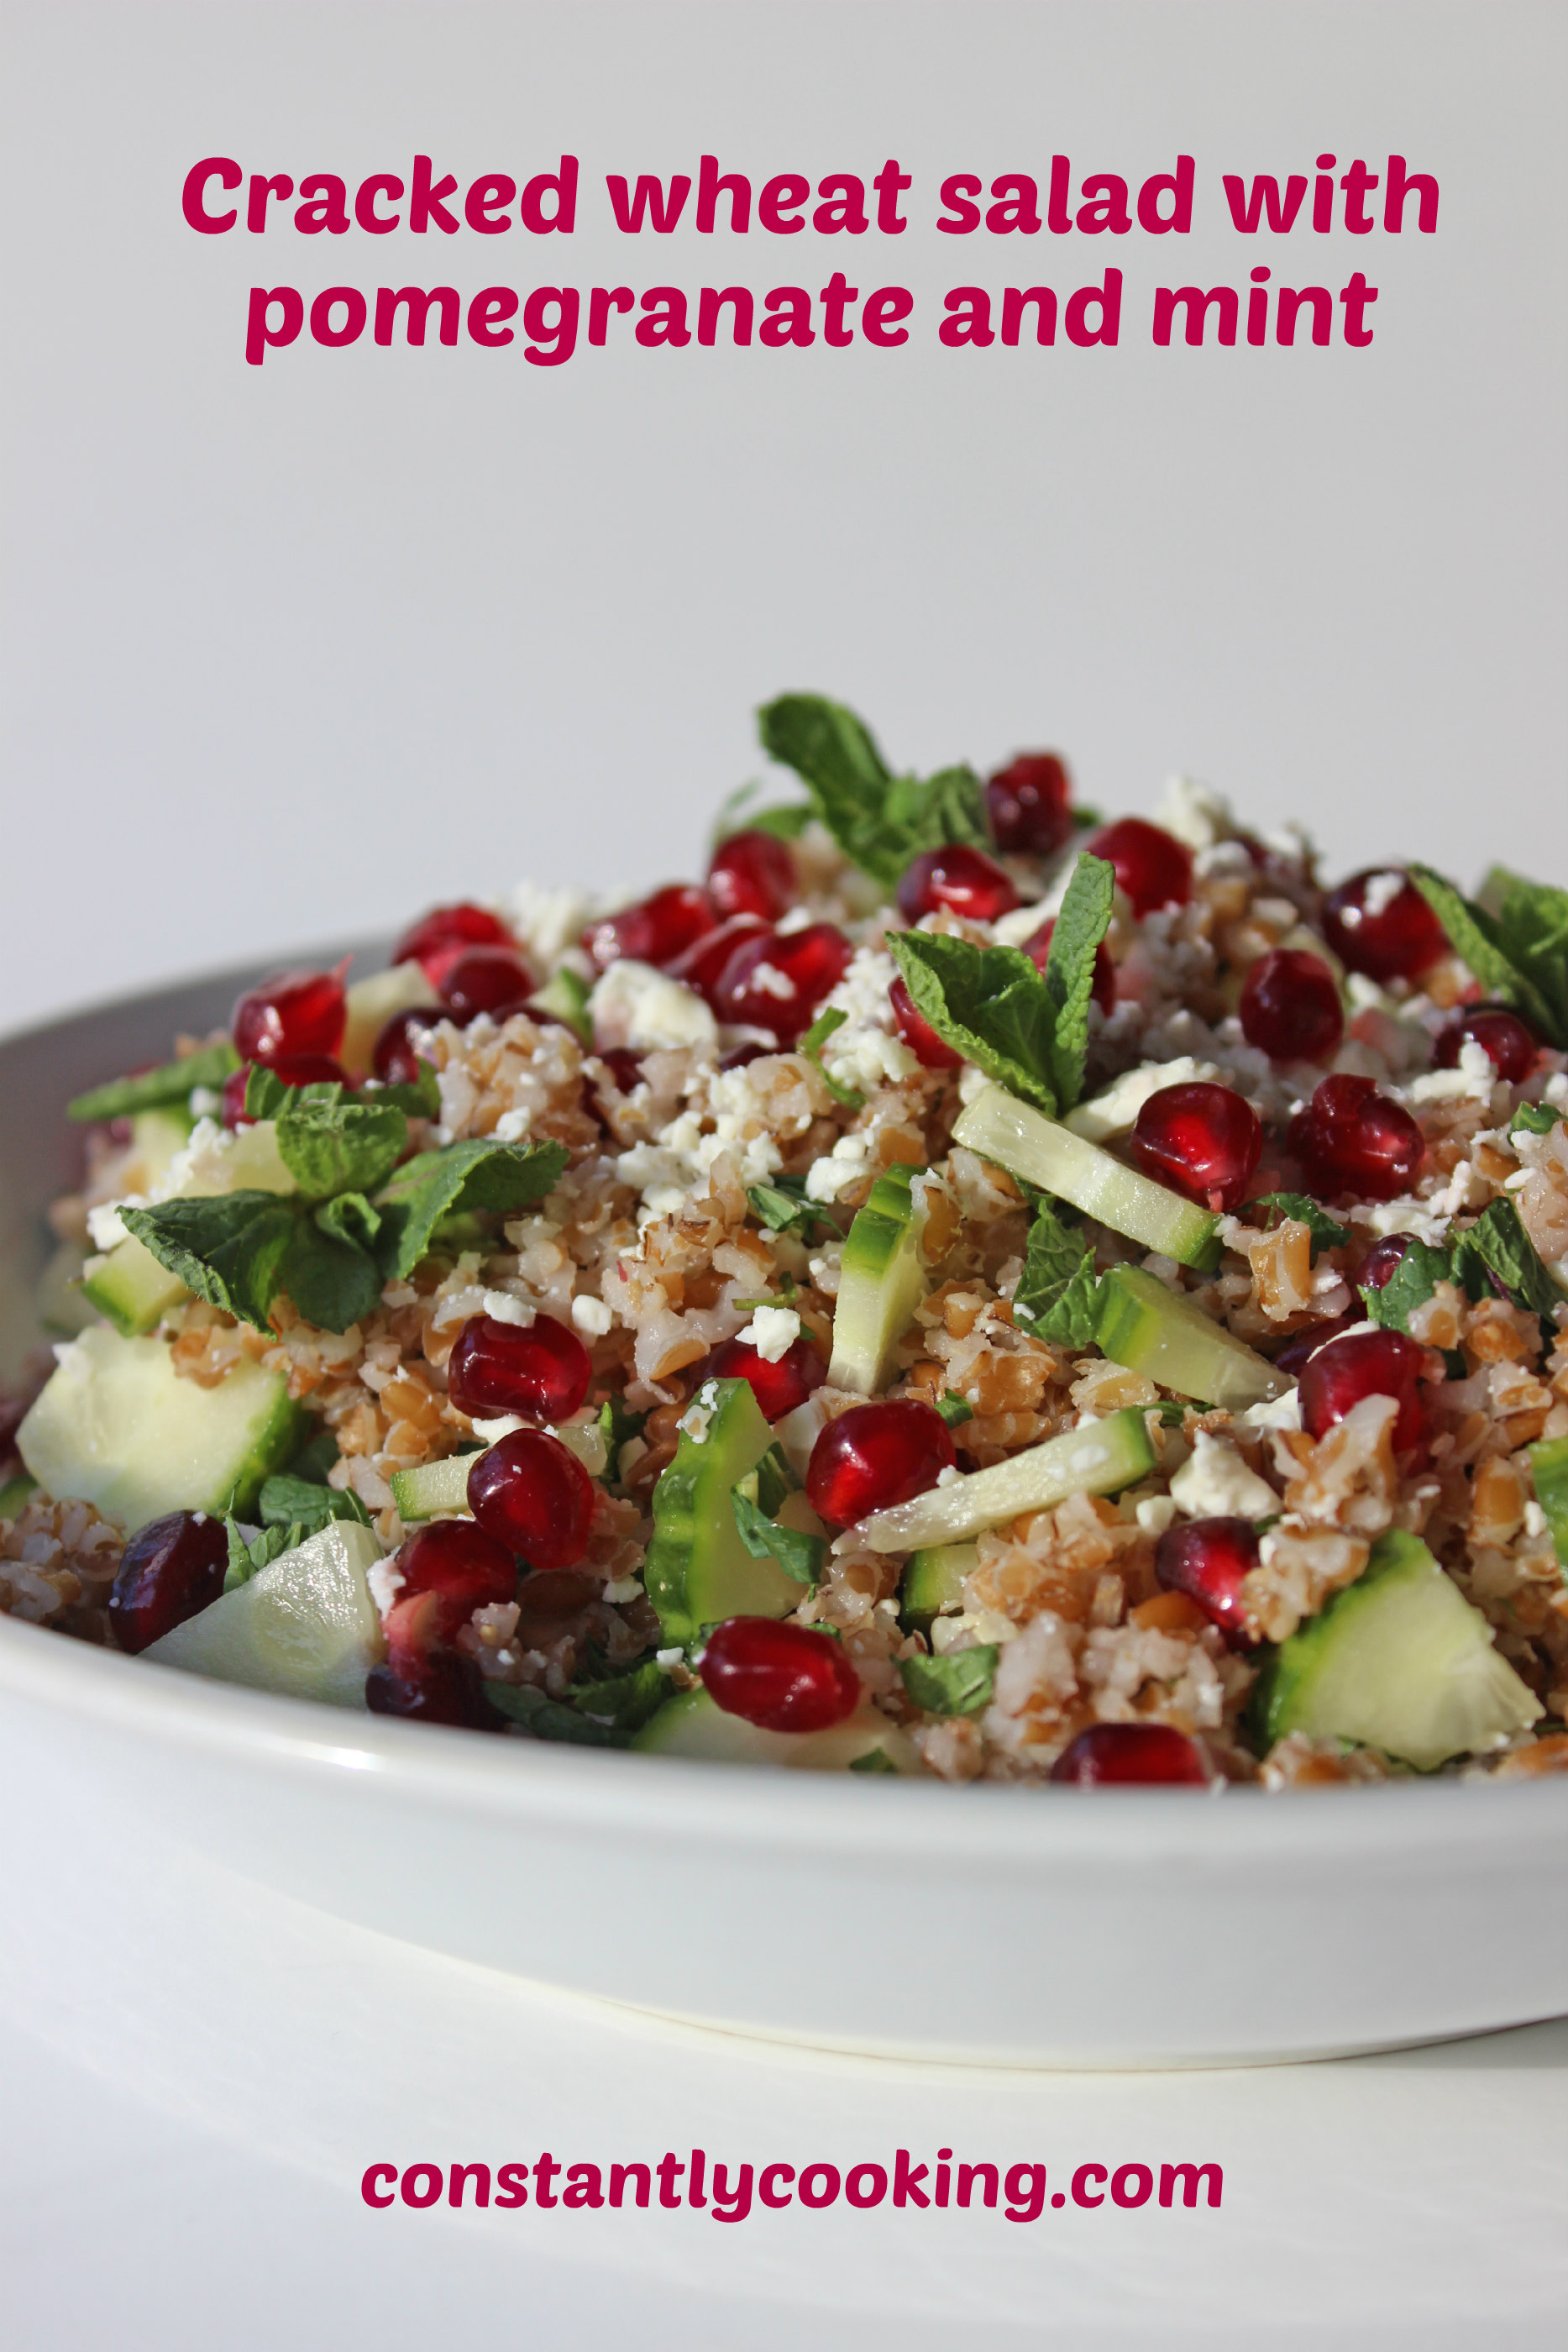 Colourful, delicious and nutritious, this cracked wheat salad with pomegranate, mint and cucumbers is easy to prepare.